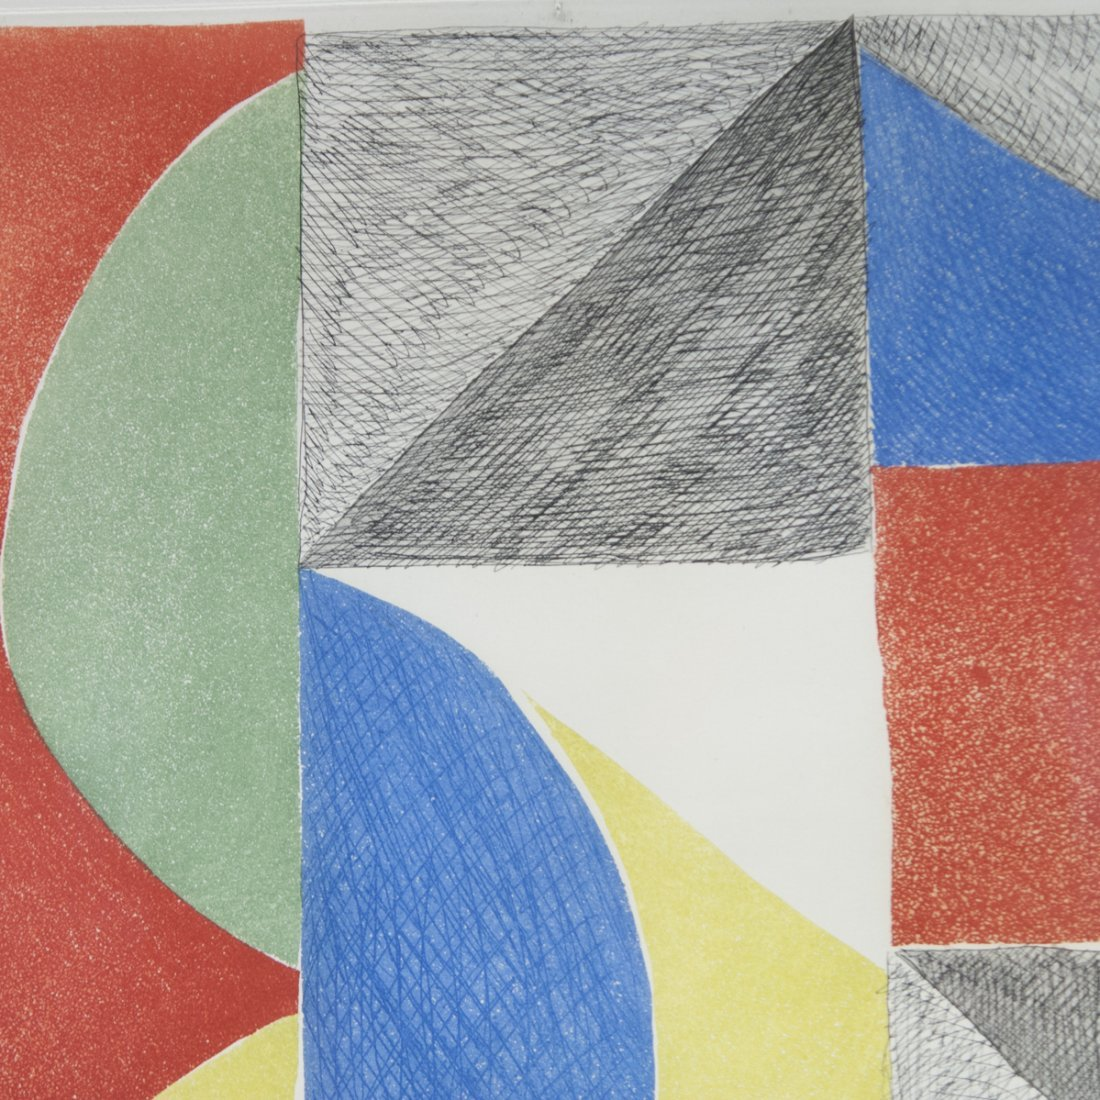 Sonia Delaunay (French 1885 - 1979) Signed Lithograph - 5